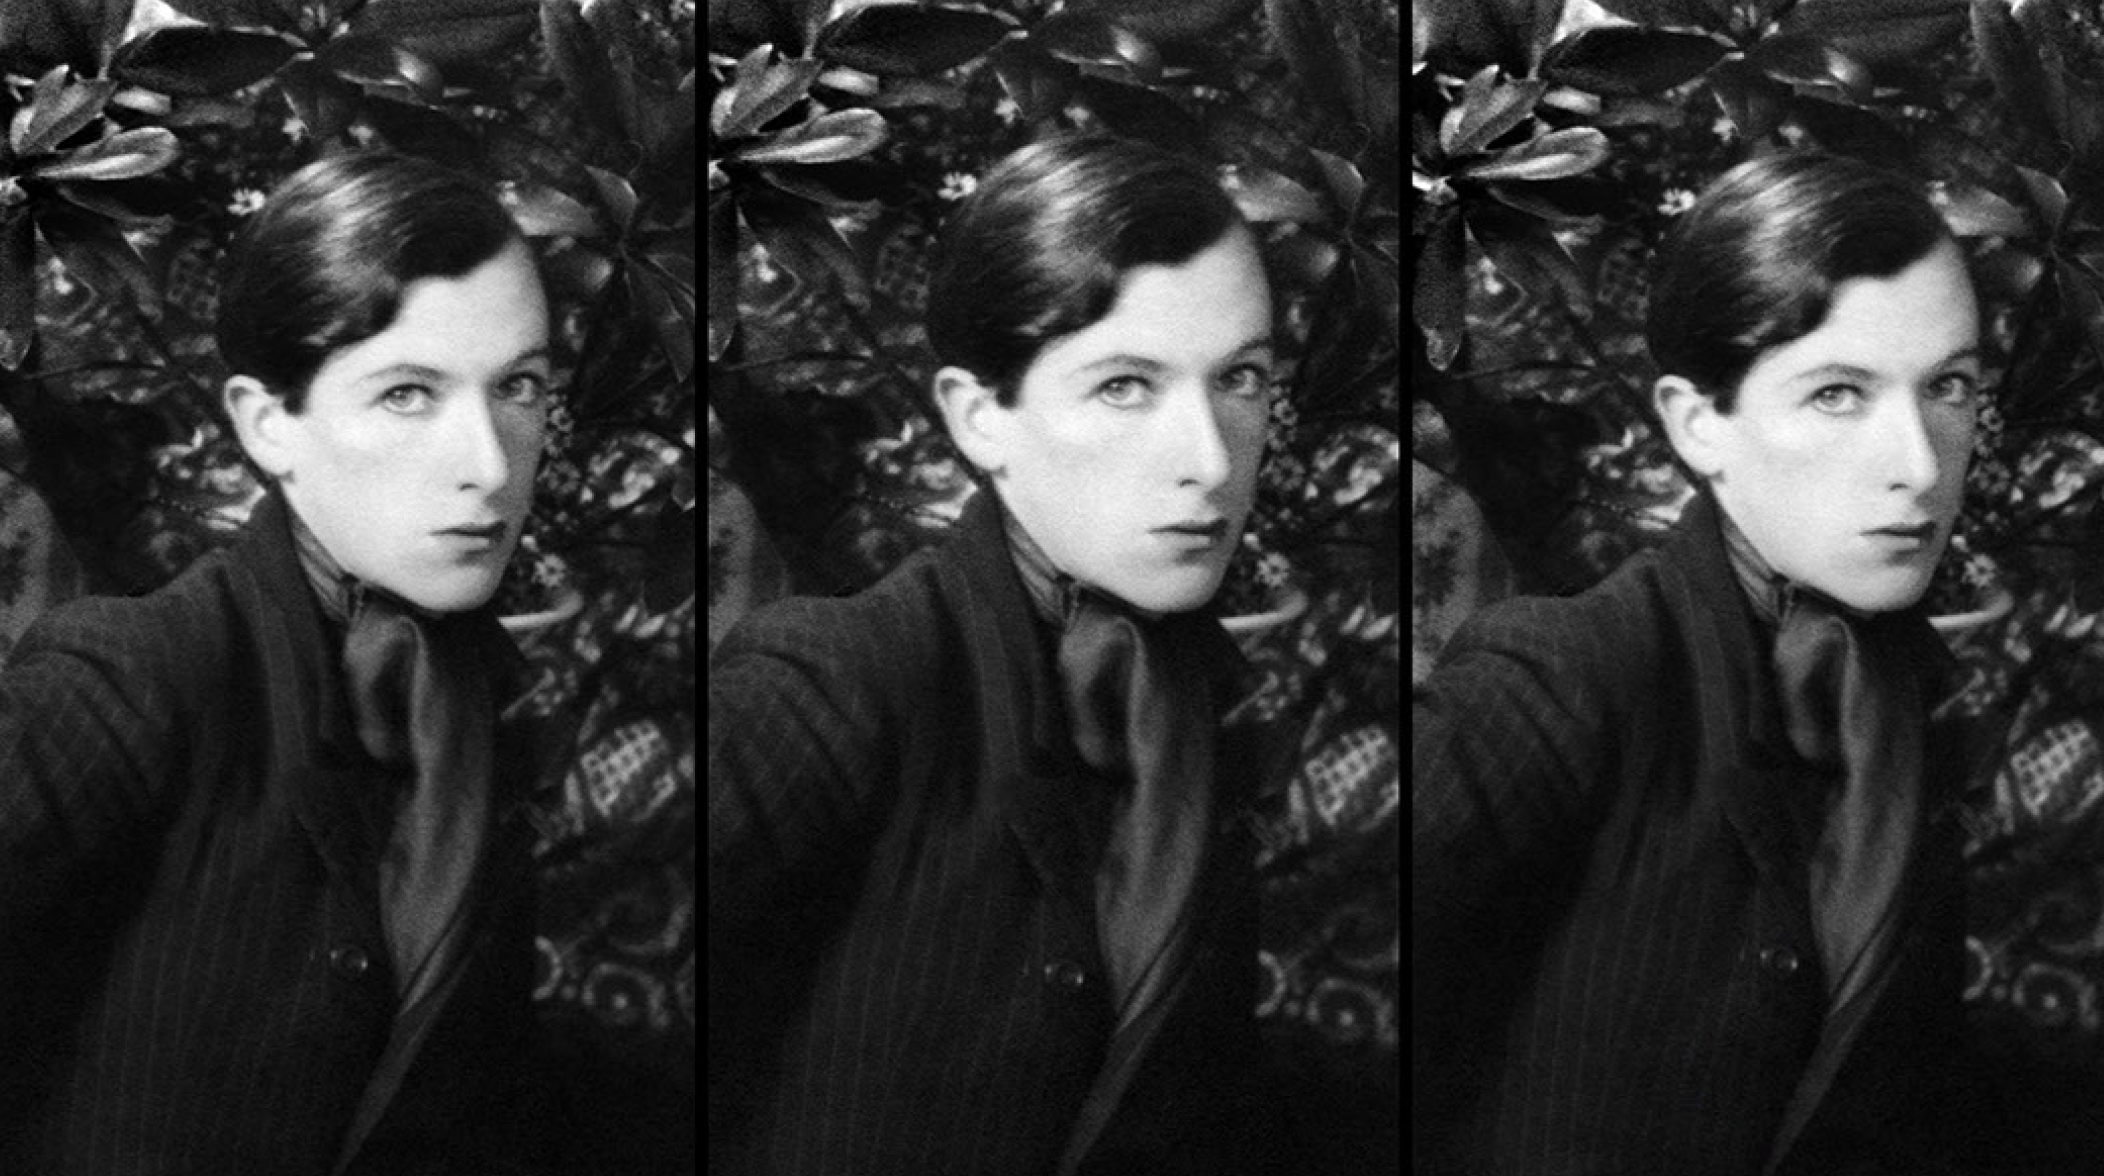 Cecil Beaton Selfie Late 1910's_Photos courtesy of the Cecil Beaton Studio Archive at Sotheby's.jpg